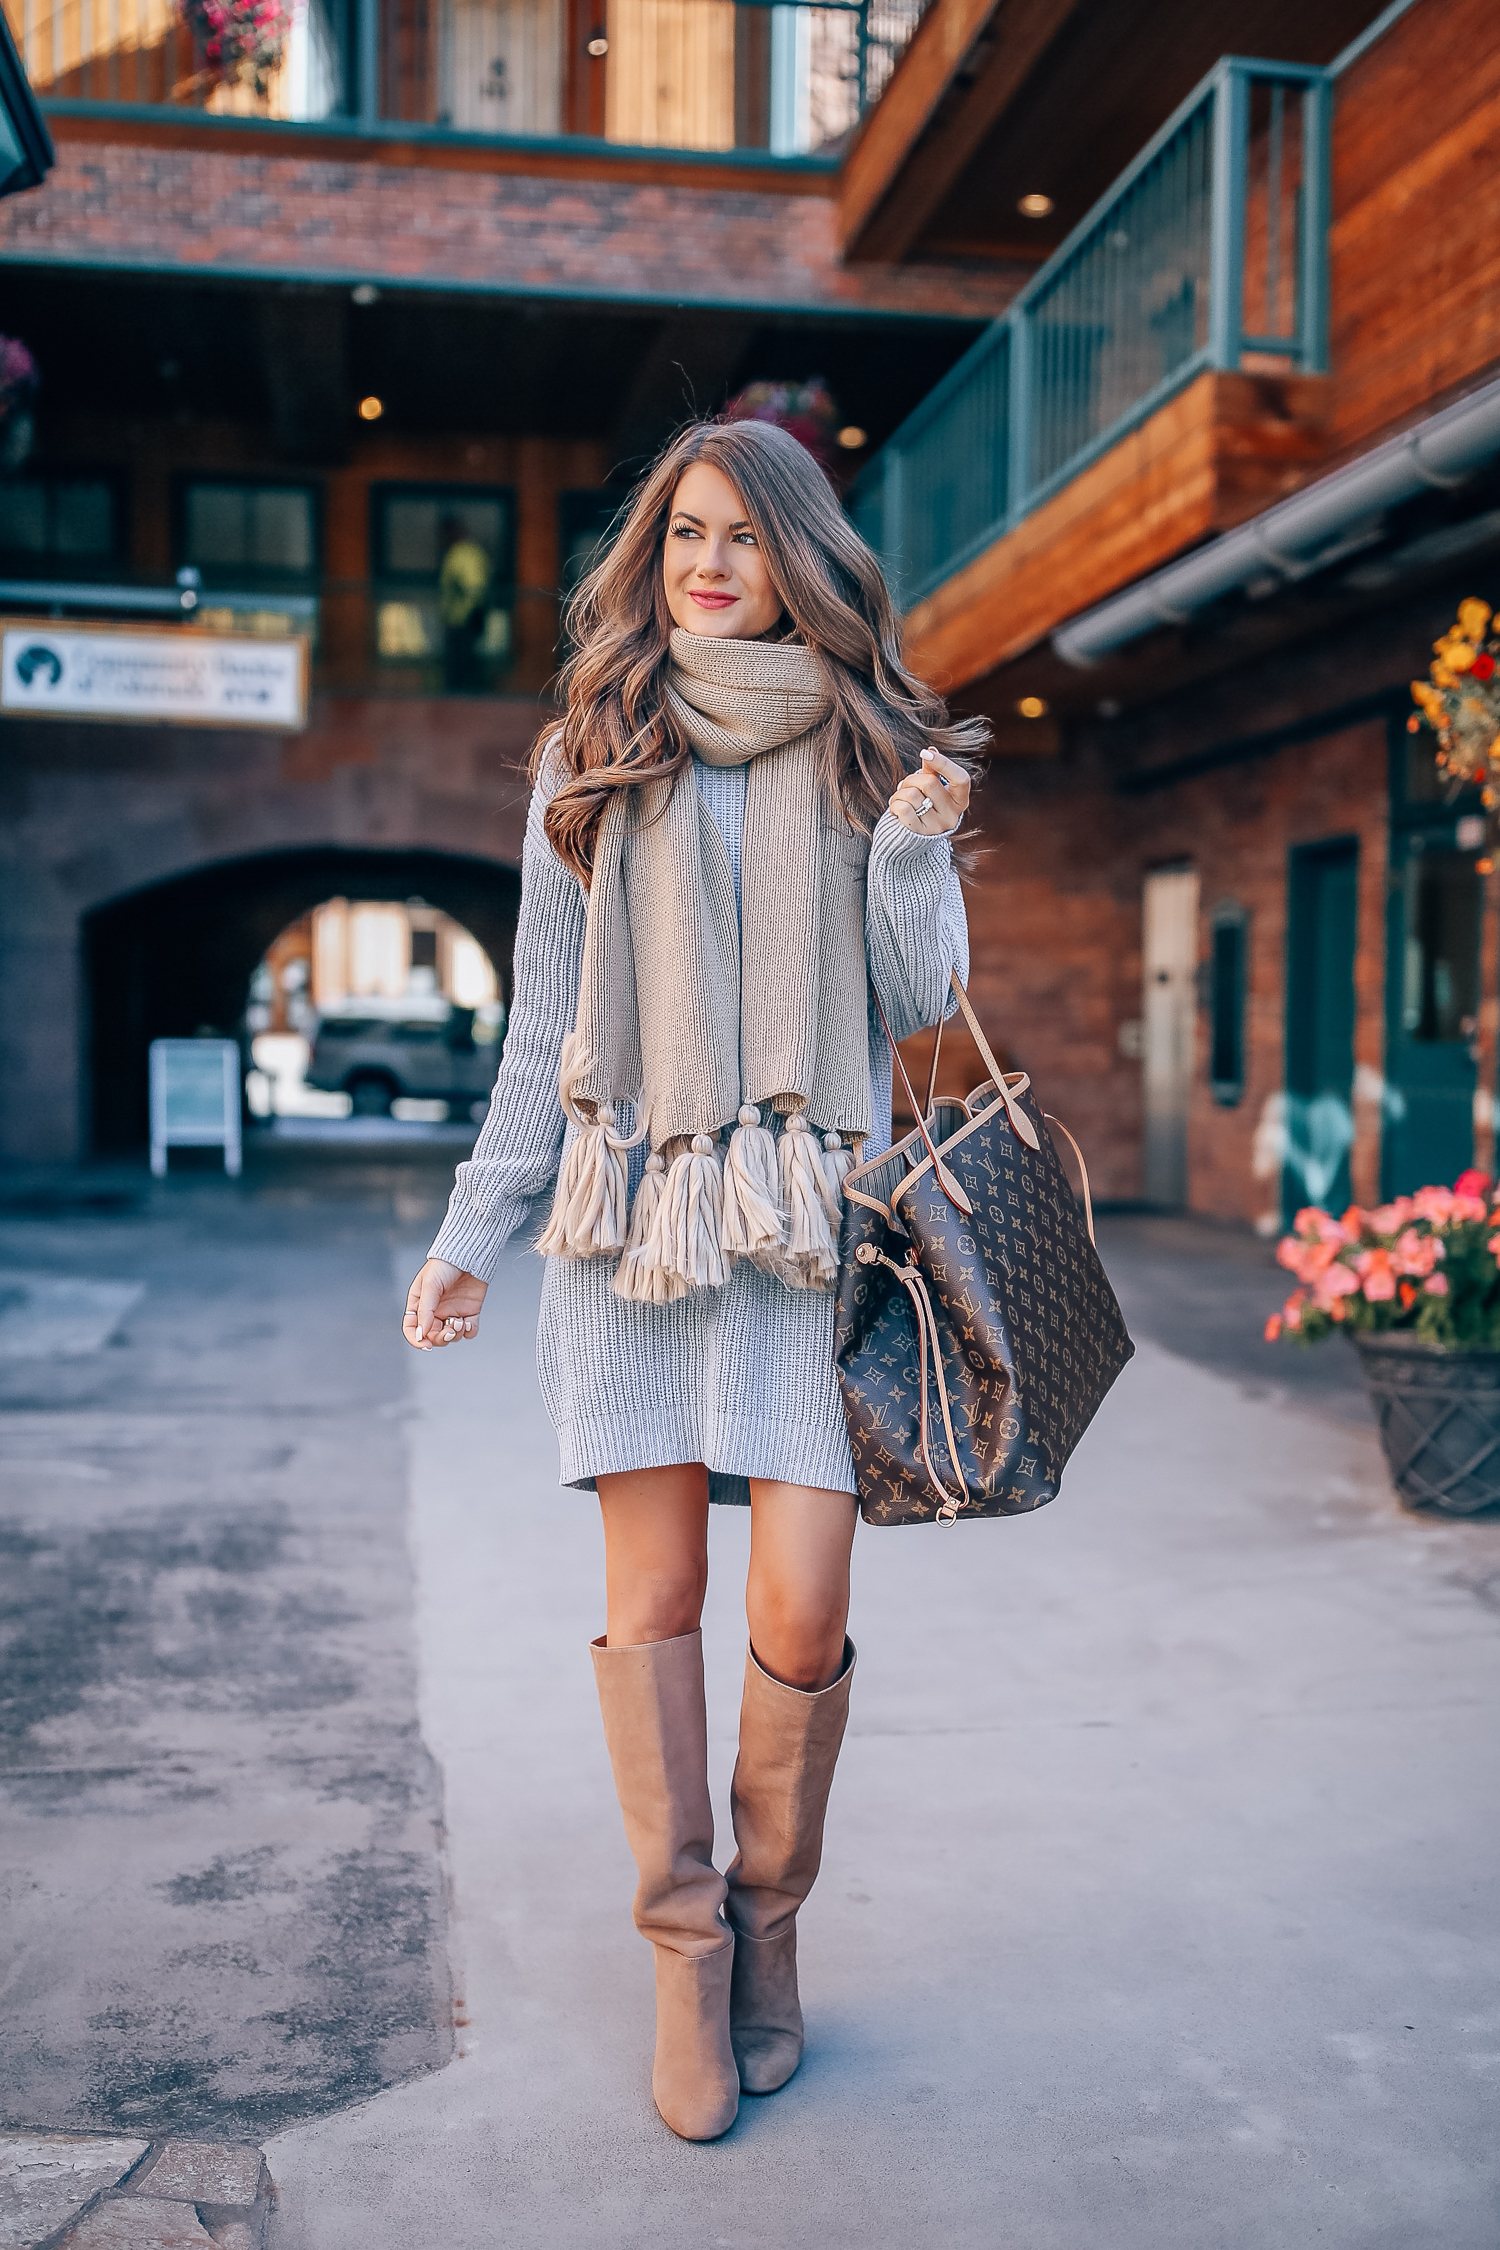 e6232a75d How cozy is this look?! I love a good sweater dress, and this one is  extraordinarily cozy (especially with a scarf and boots added in the mix!)